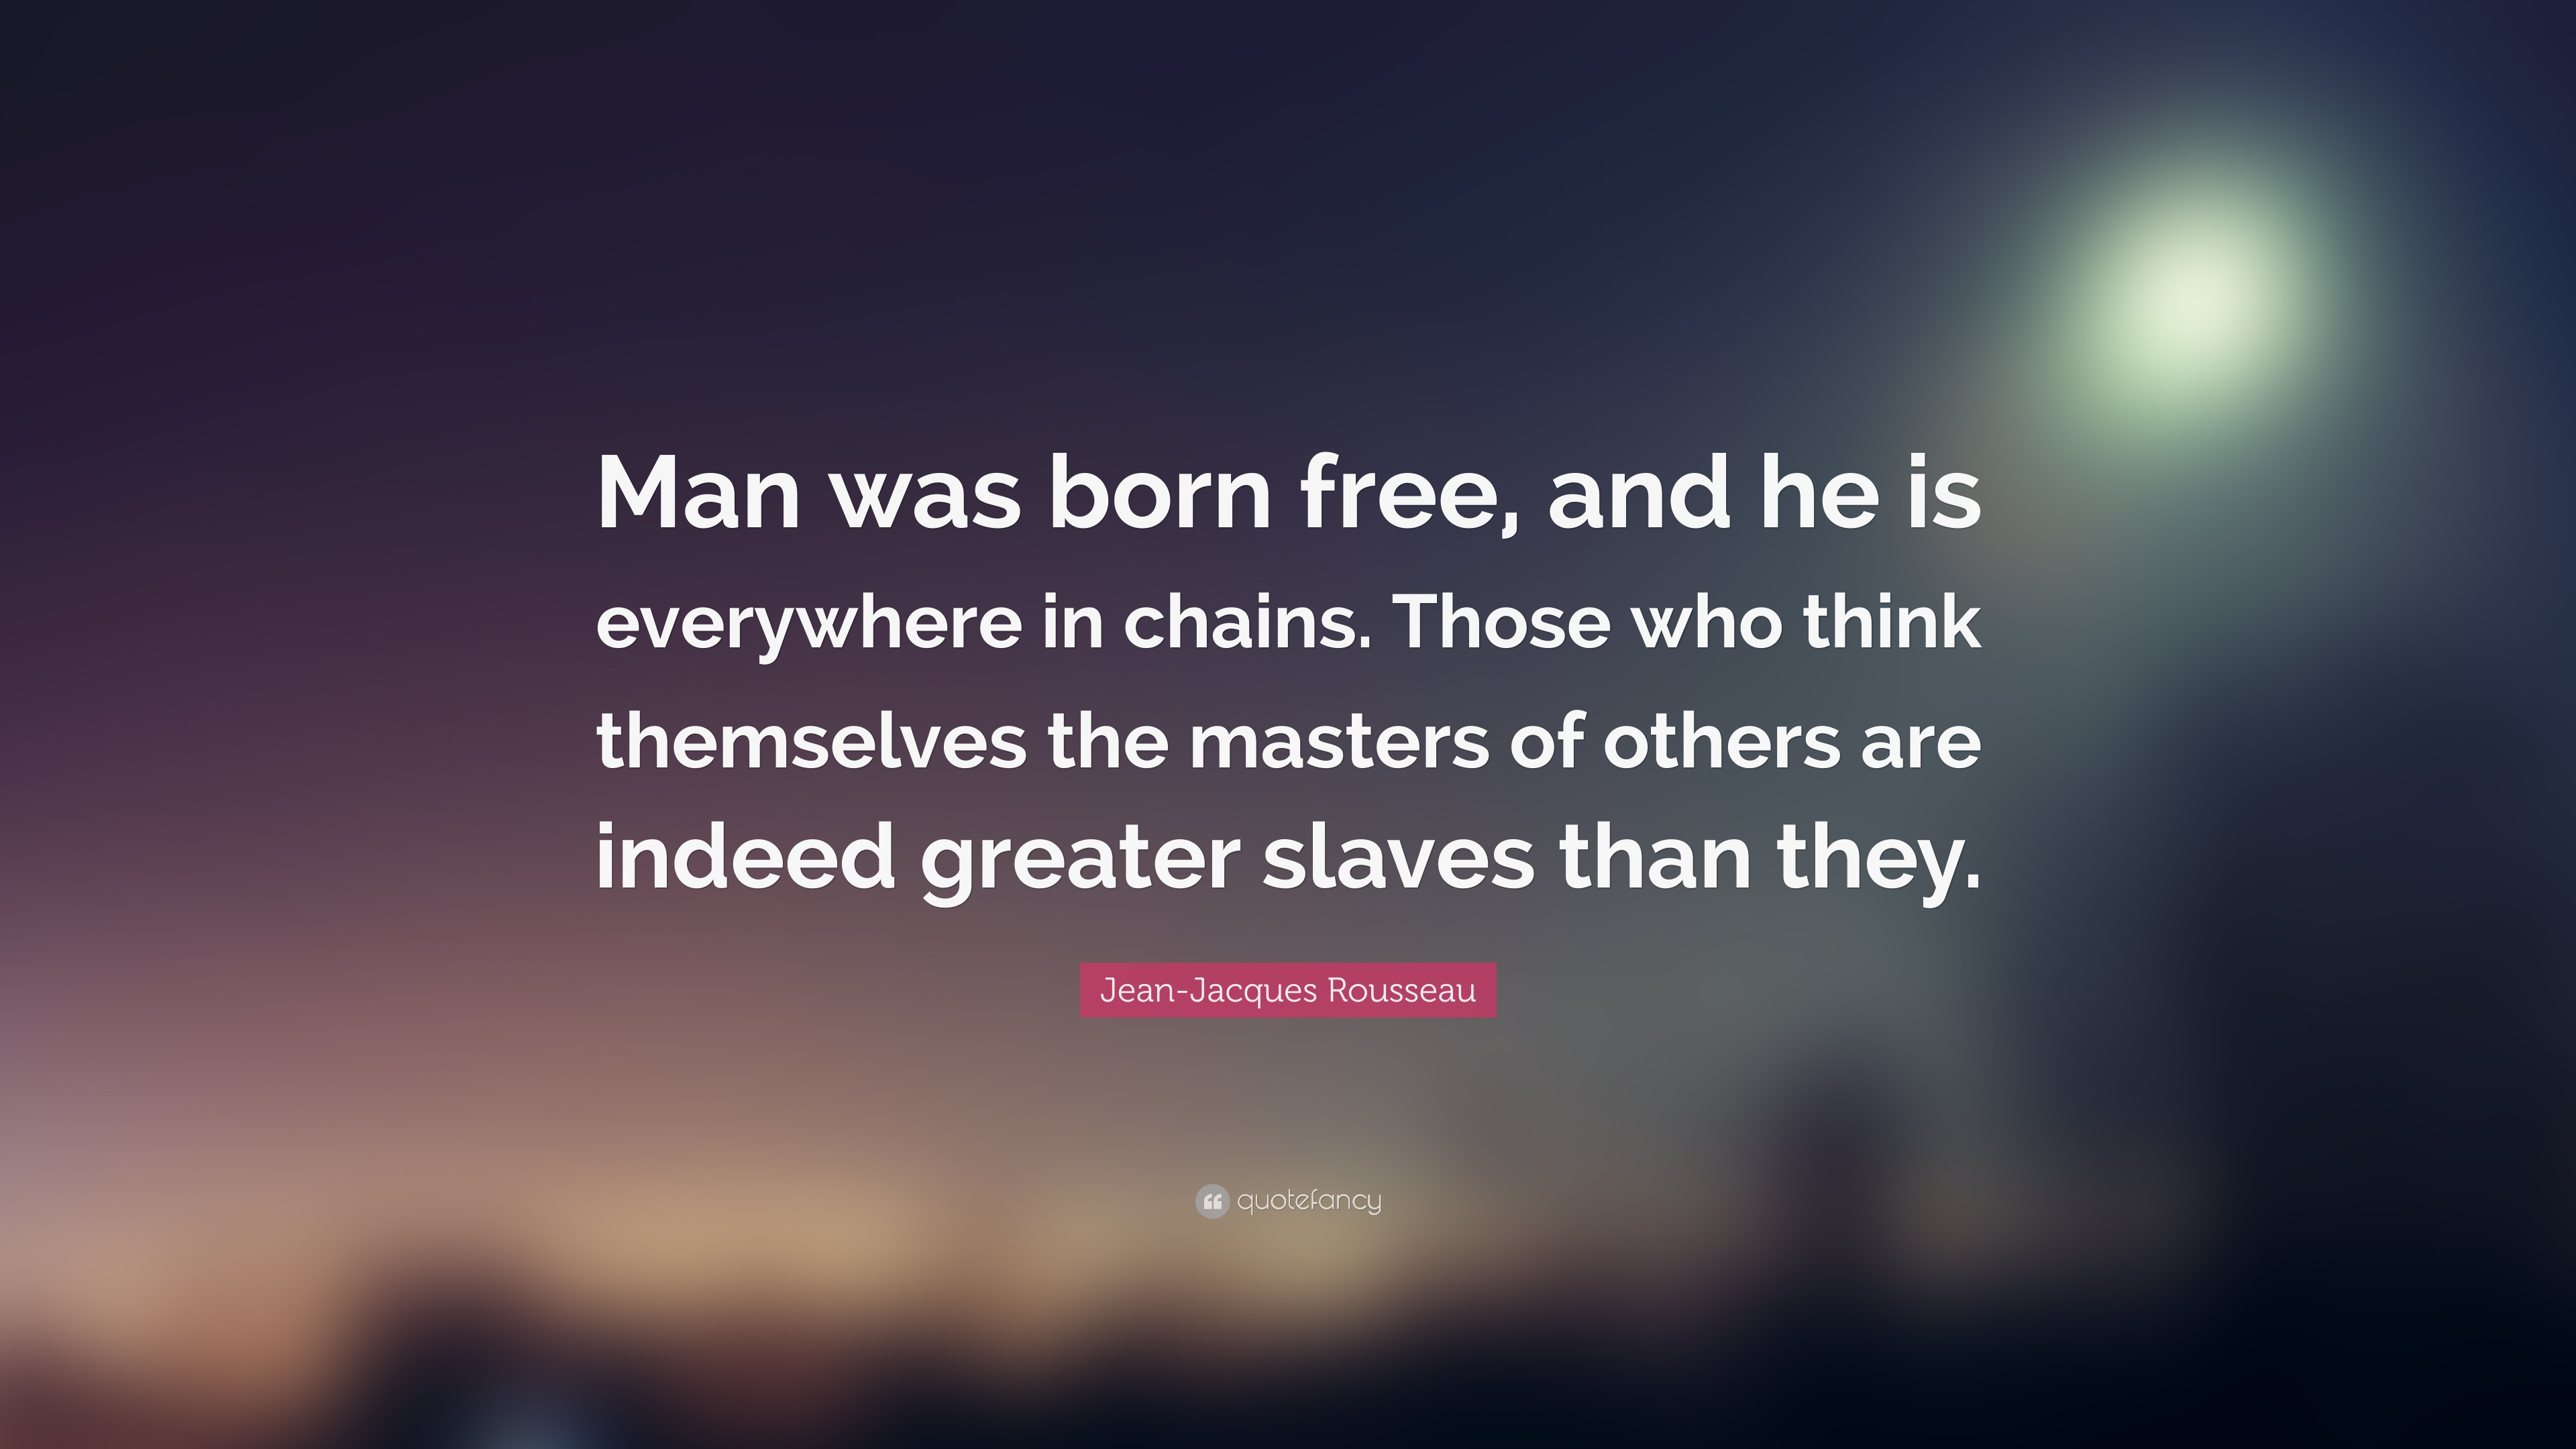 273860-Jean-Jacques-Rousseau-Quote-Man-was-born-free-and-he-is-everywhere